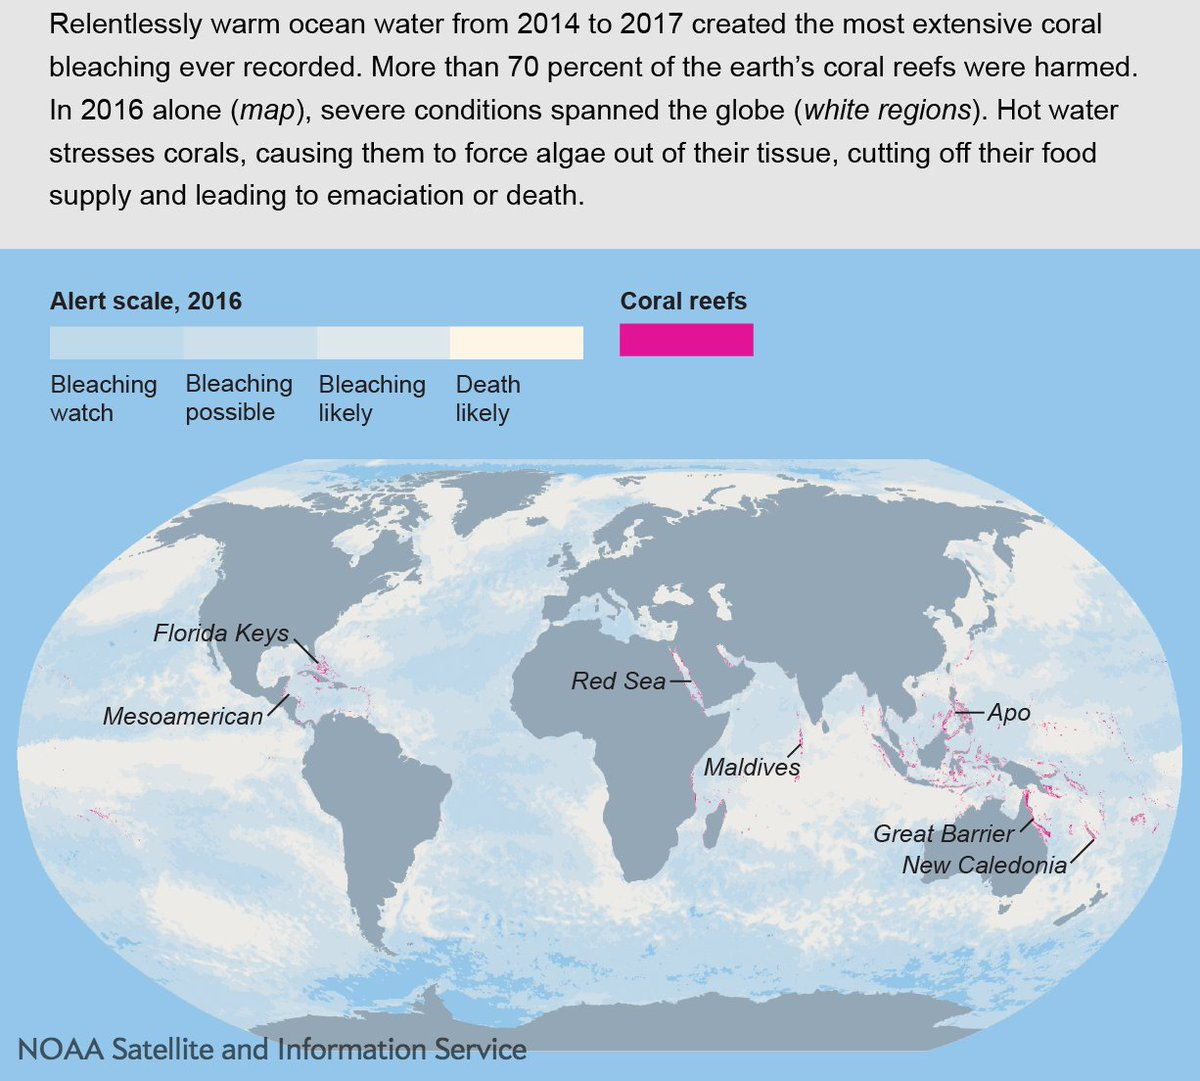 test Twitter Media - We're celebrating #Datapalooza with @NOAASatellite. This infographic shows the worst coral bleaching on record. Read the full story here: https://t.co/wFSGHyTxLp https://t.co/Ukk71q3FSm